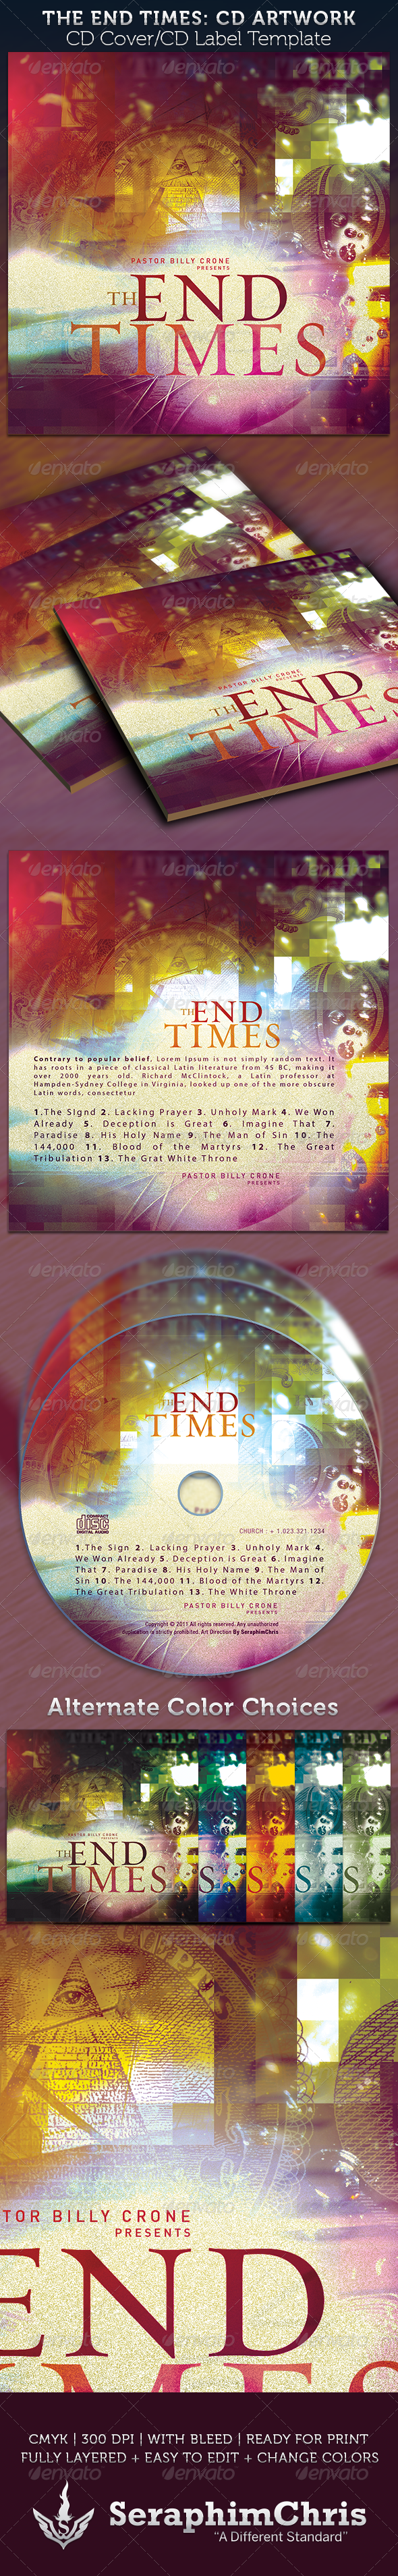 The End Times CD Cover Artwork Template - CD & DVD artwork Print Templates